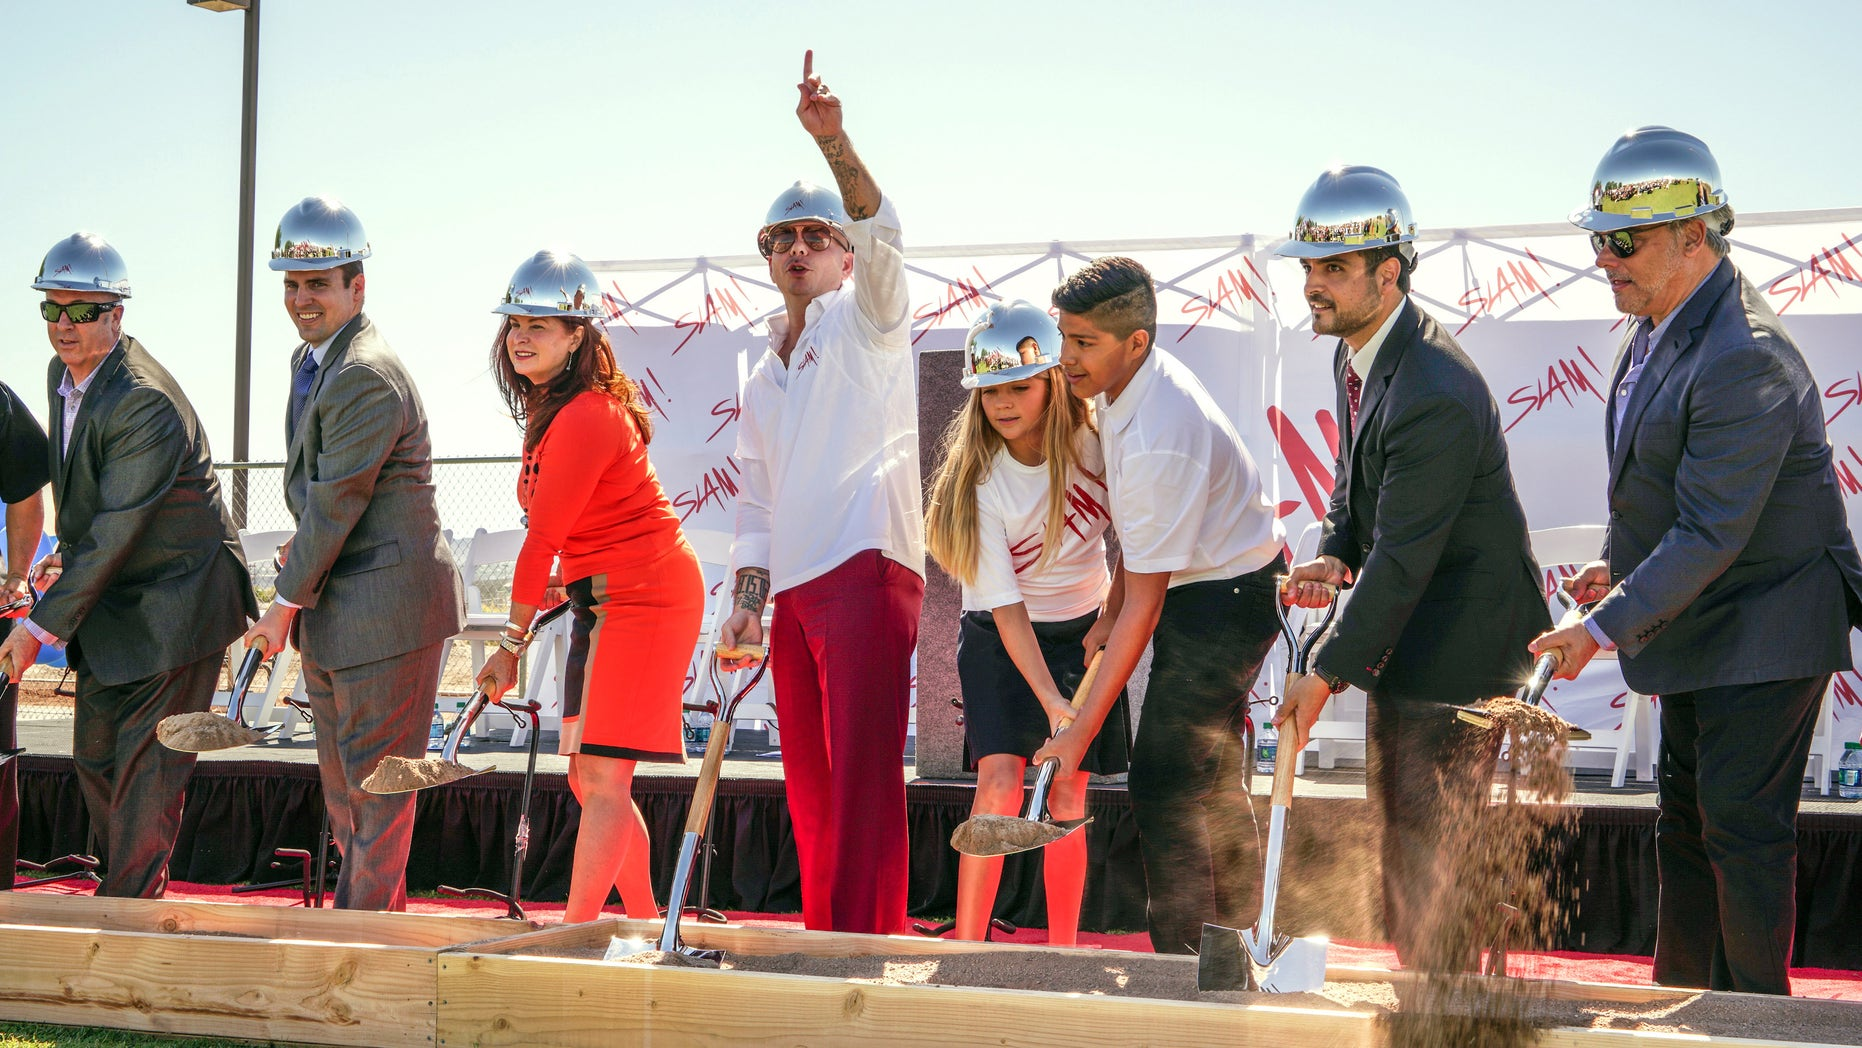 In this photo provided by Pitbull, Rapper Pitbull, fourth from left, gestures during a groundbreaking ceremony for SLAM!,  the school whose name stands for Sports Leadership and Management Academy, on Friday, Oct. 2, 2015, in Henderson, Nev. The school that ties sports themes to its curriculum for students seeking careers in sports medicine, marketing, business and management is expected to open in time for the 2016 school year for students in grades six through nine. Pitbull opened his first SLAM! School in Miami in 2013. (Greg Watermann for Pitbull  via AP )